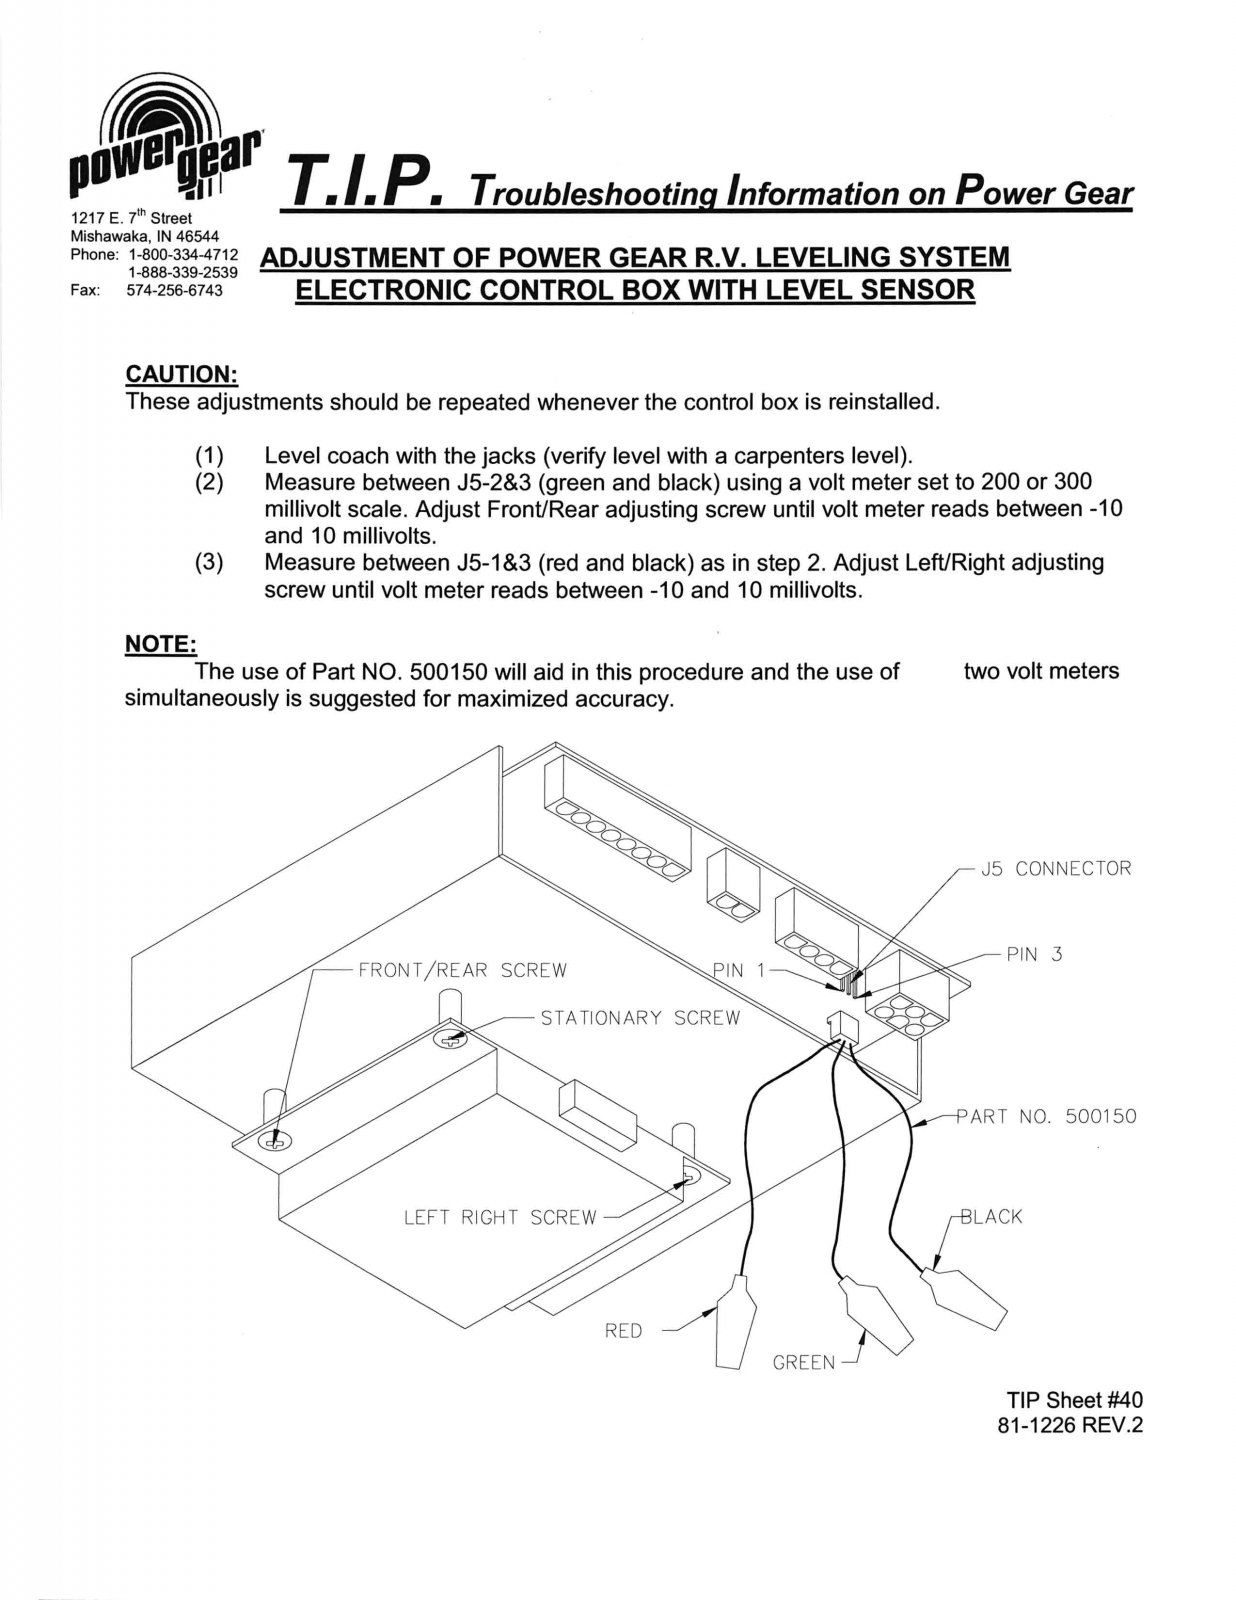 Click image for larger version  Name:Power Gear Electronic control box adjustment.jpg Views:59 Size:213.8 KB ID:77716